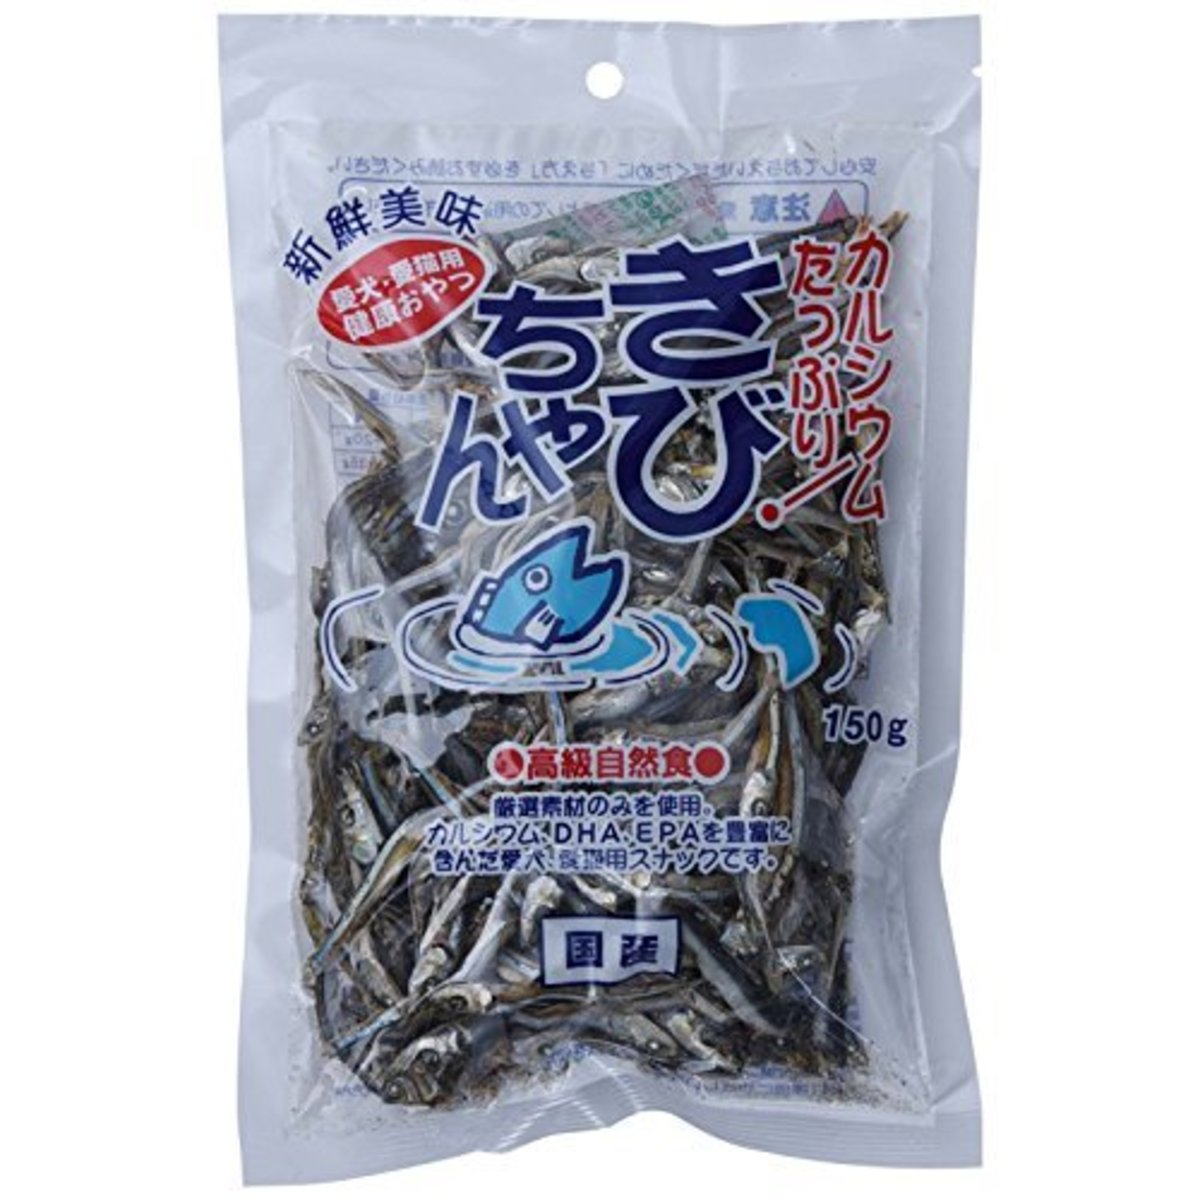 ASUKU Sardines 150g (10325) (Parallel Import from Japan)